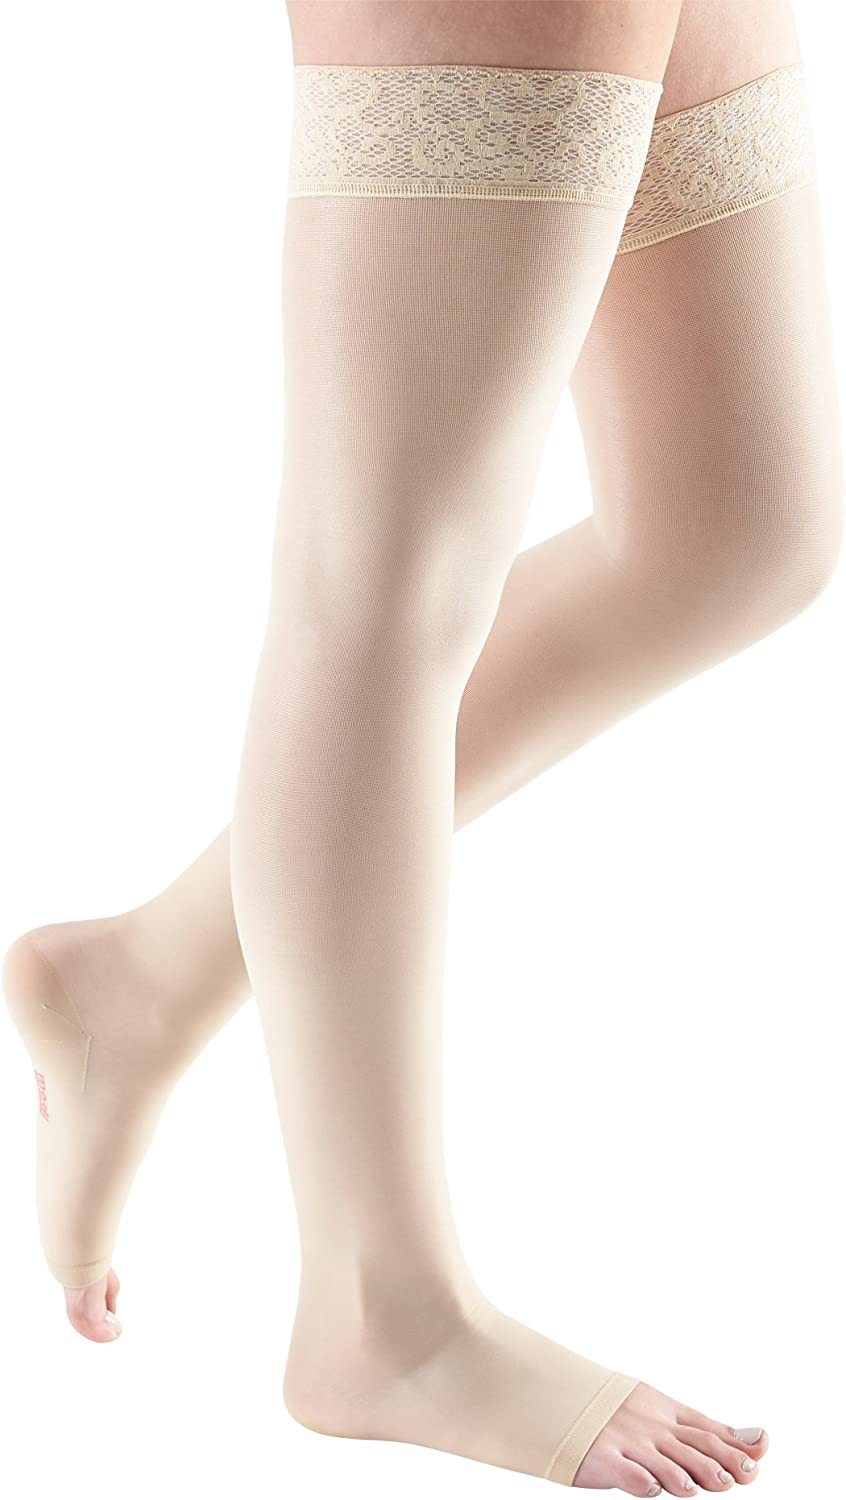 Open Toe Thigh High Compression Stockings medi Sheer /& Soft for Women 20-30 mmHg